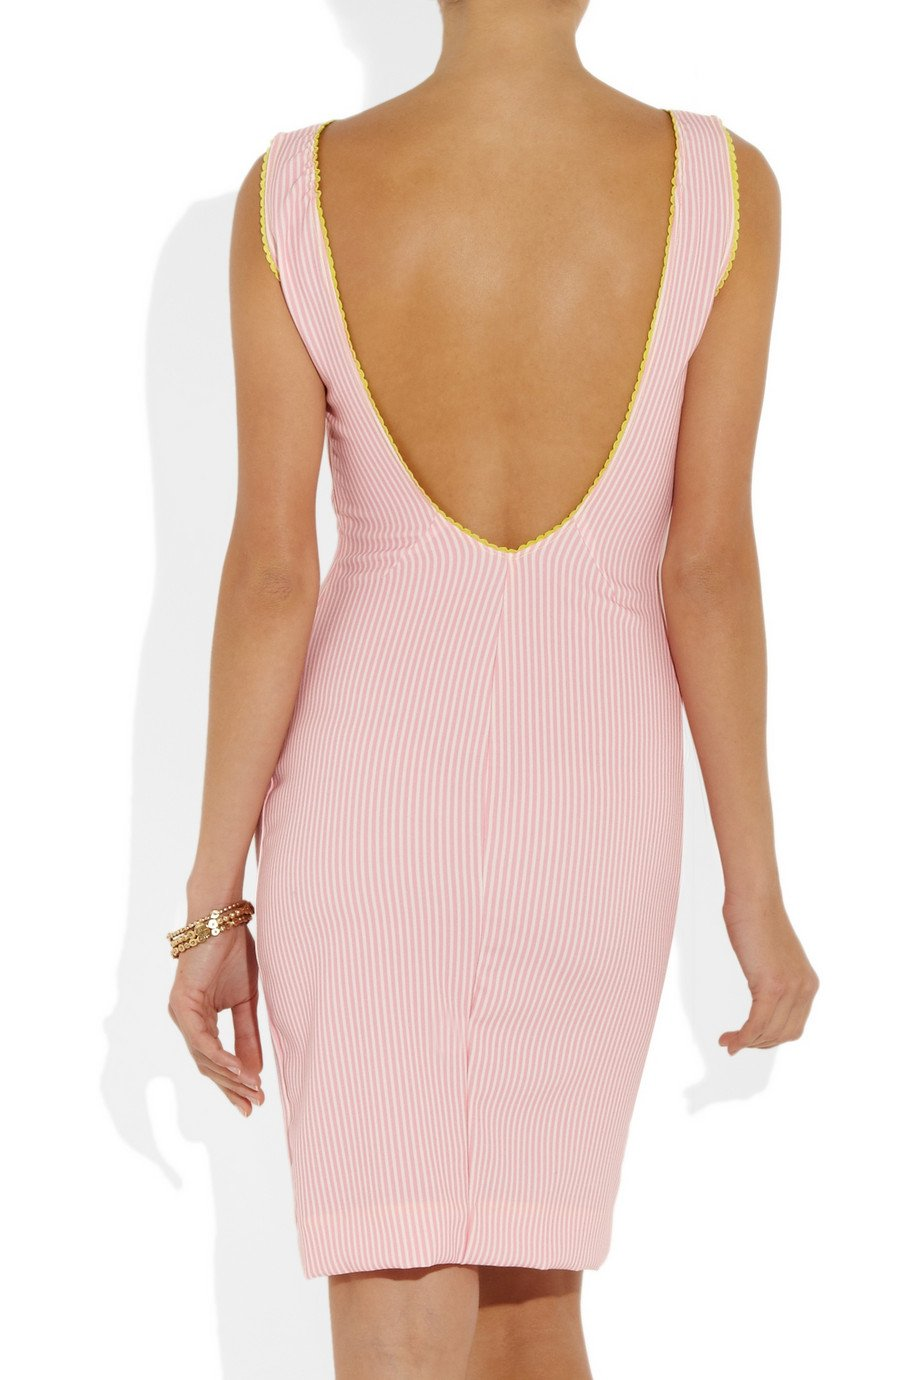 rosamosario-pink-lovers-en-space-striped-cottonblend-dress-product-3-10822189-966336628